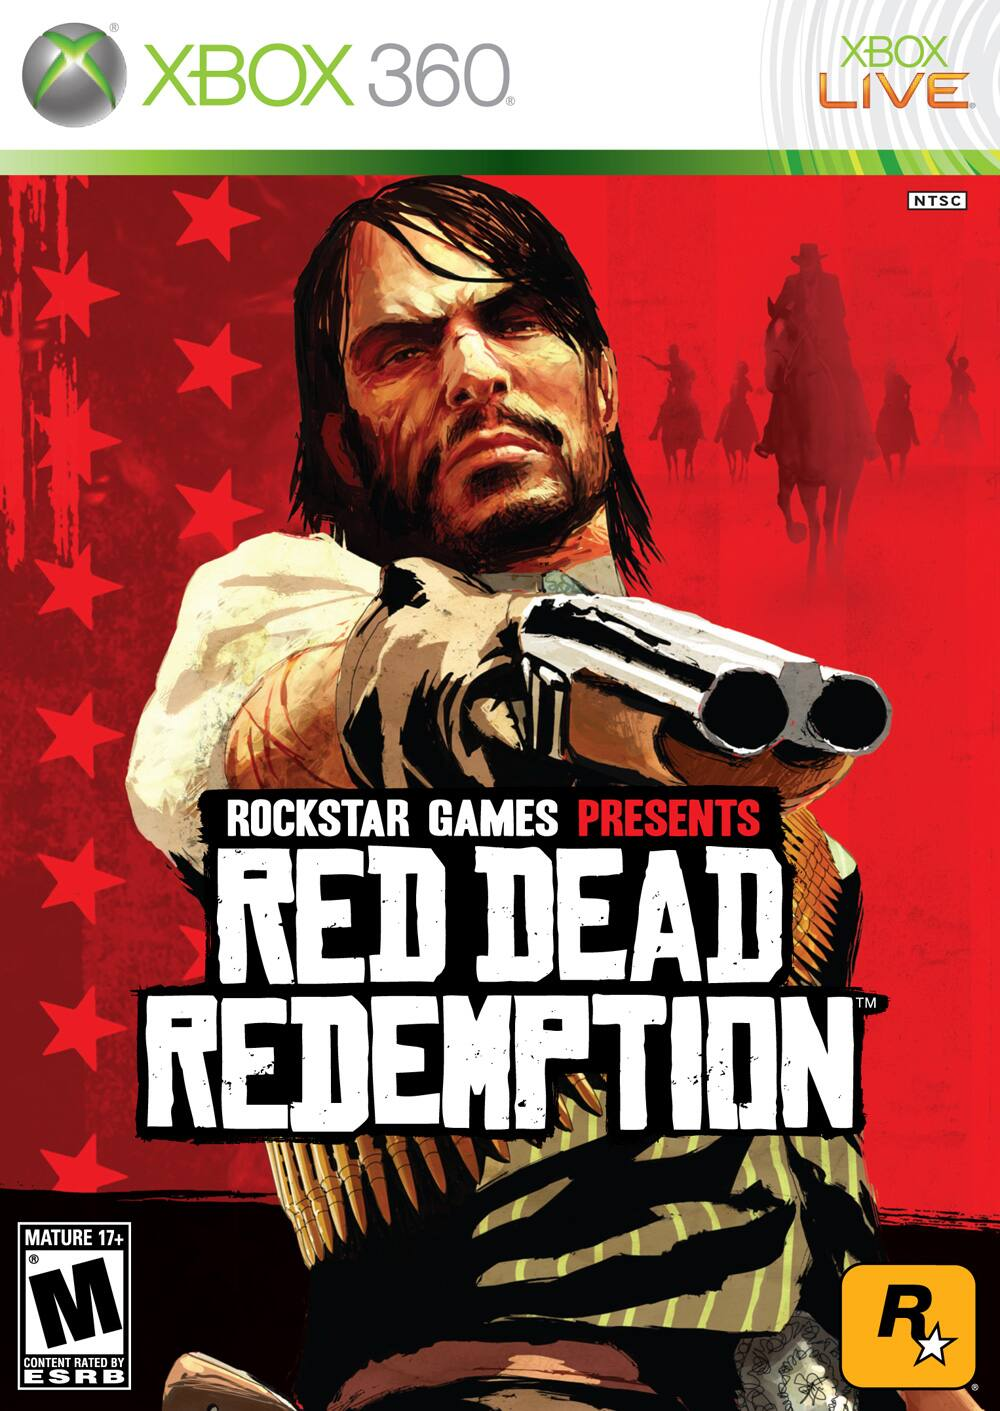 Red Dead Redemption (Xbox 360 Digital Download)  $7.50 (XBL Membership Req'd)